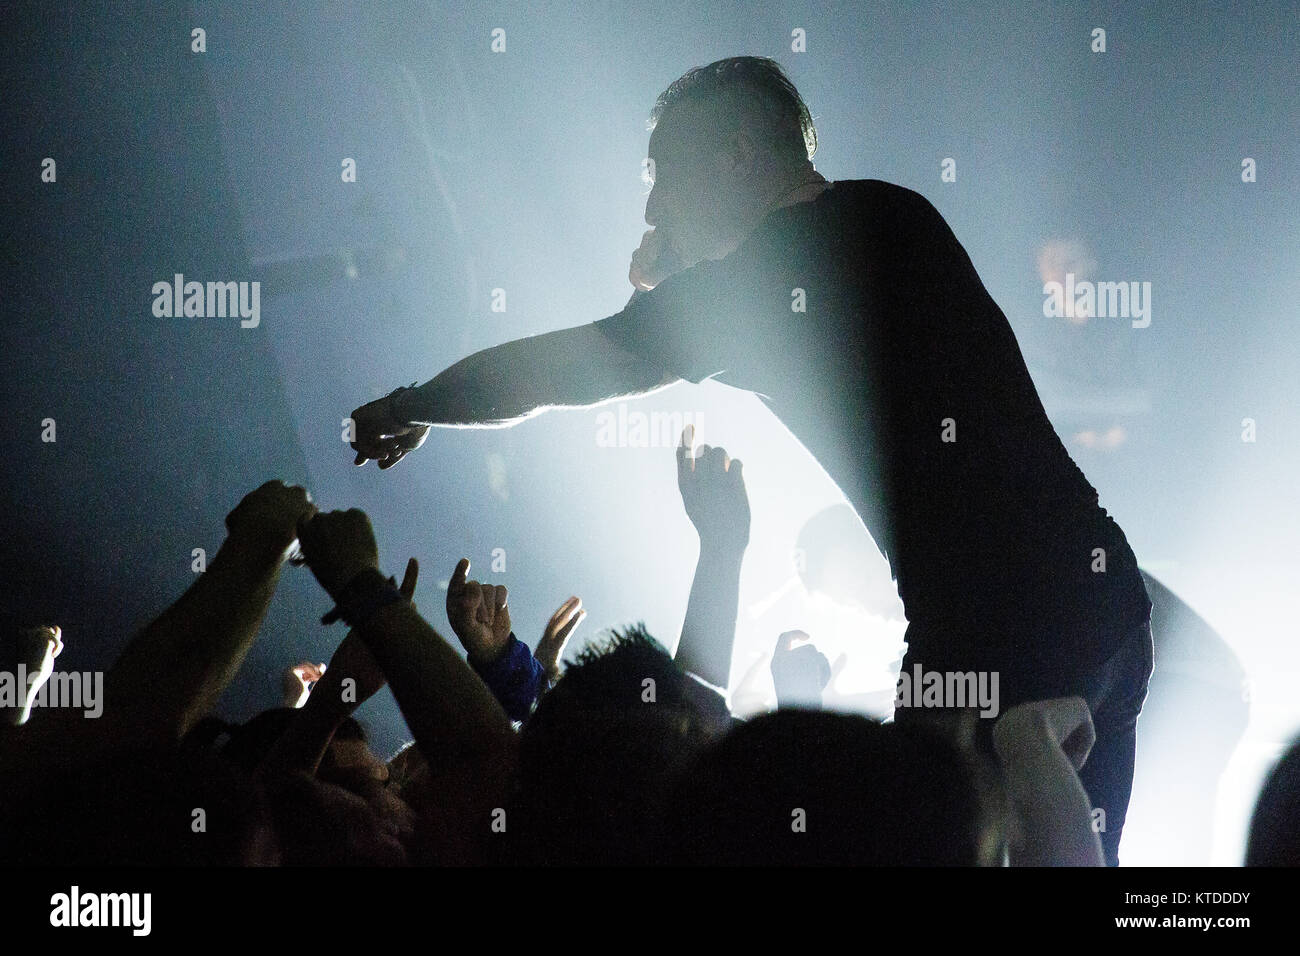 The American mathcore band The Dillinger Escape Plan performs a live concert at Pumpehuset in Copenhagen. Here vocalist - Stock Image